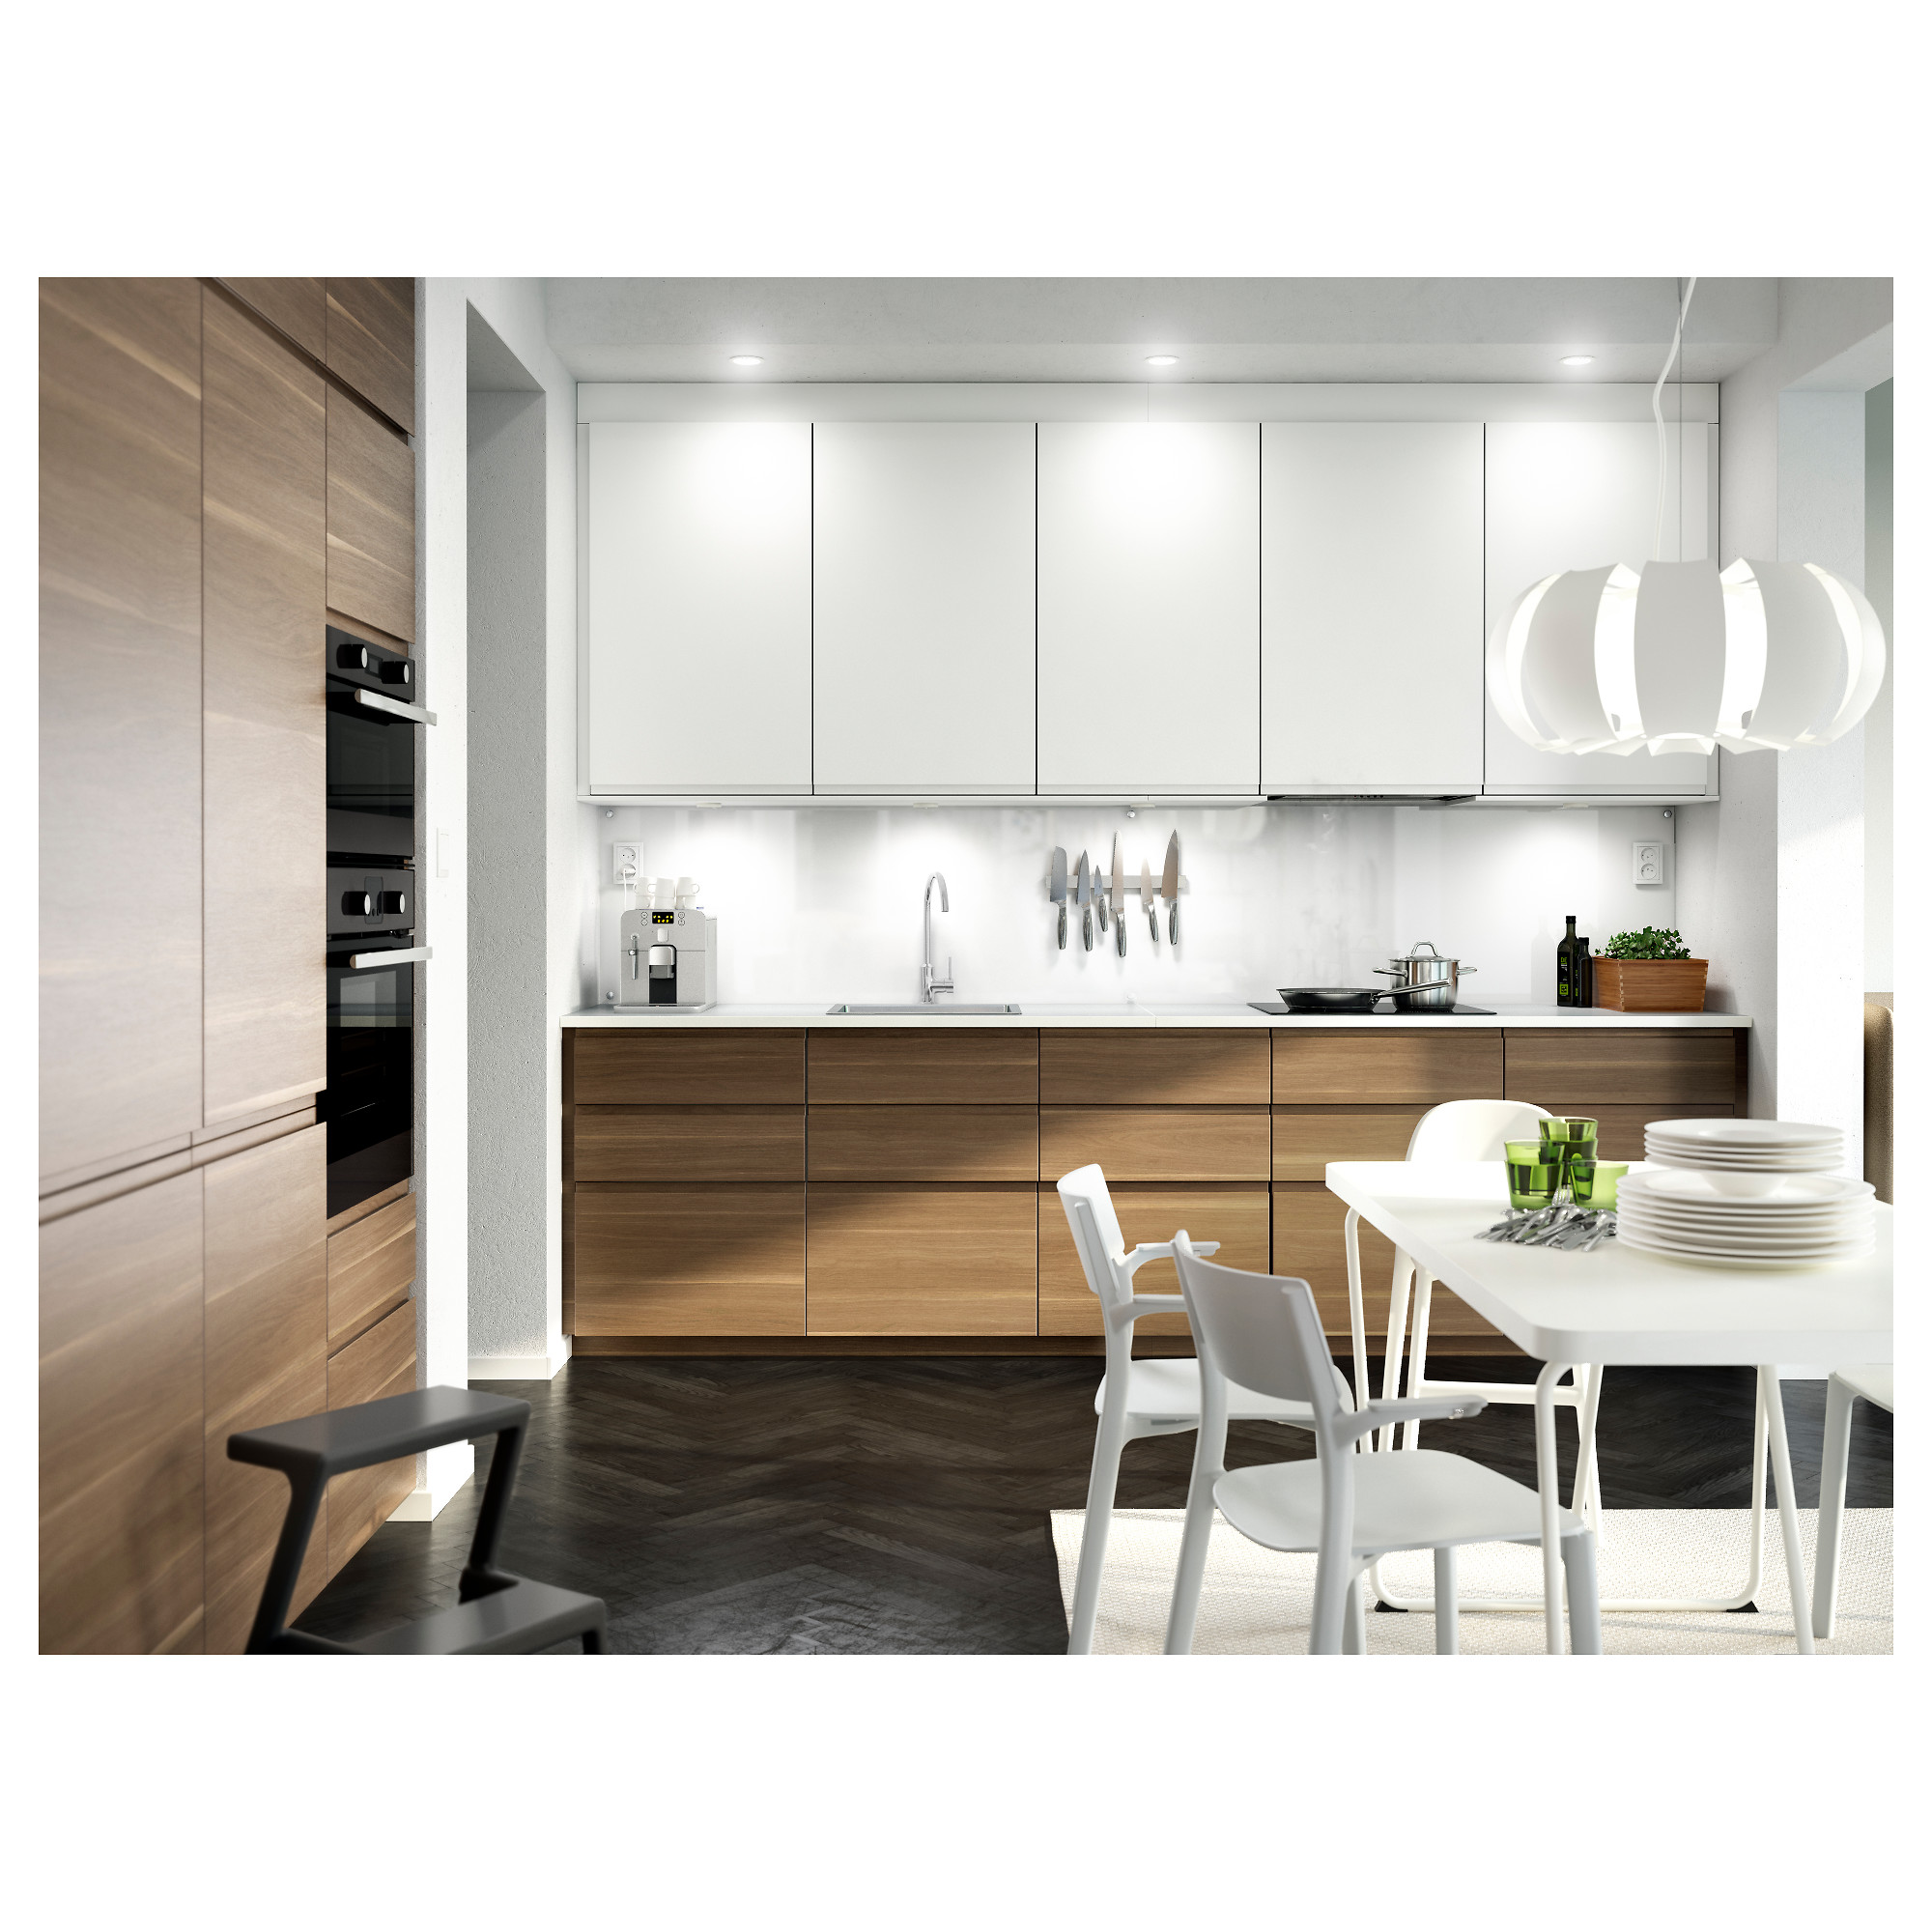 Image Result For Ikea Voxtorp Kitchen Cost